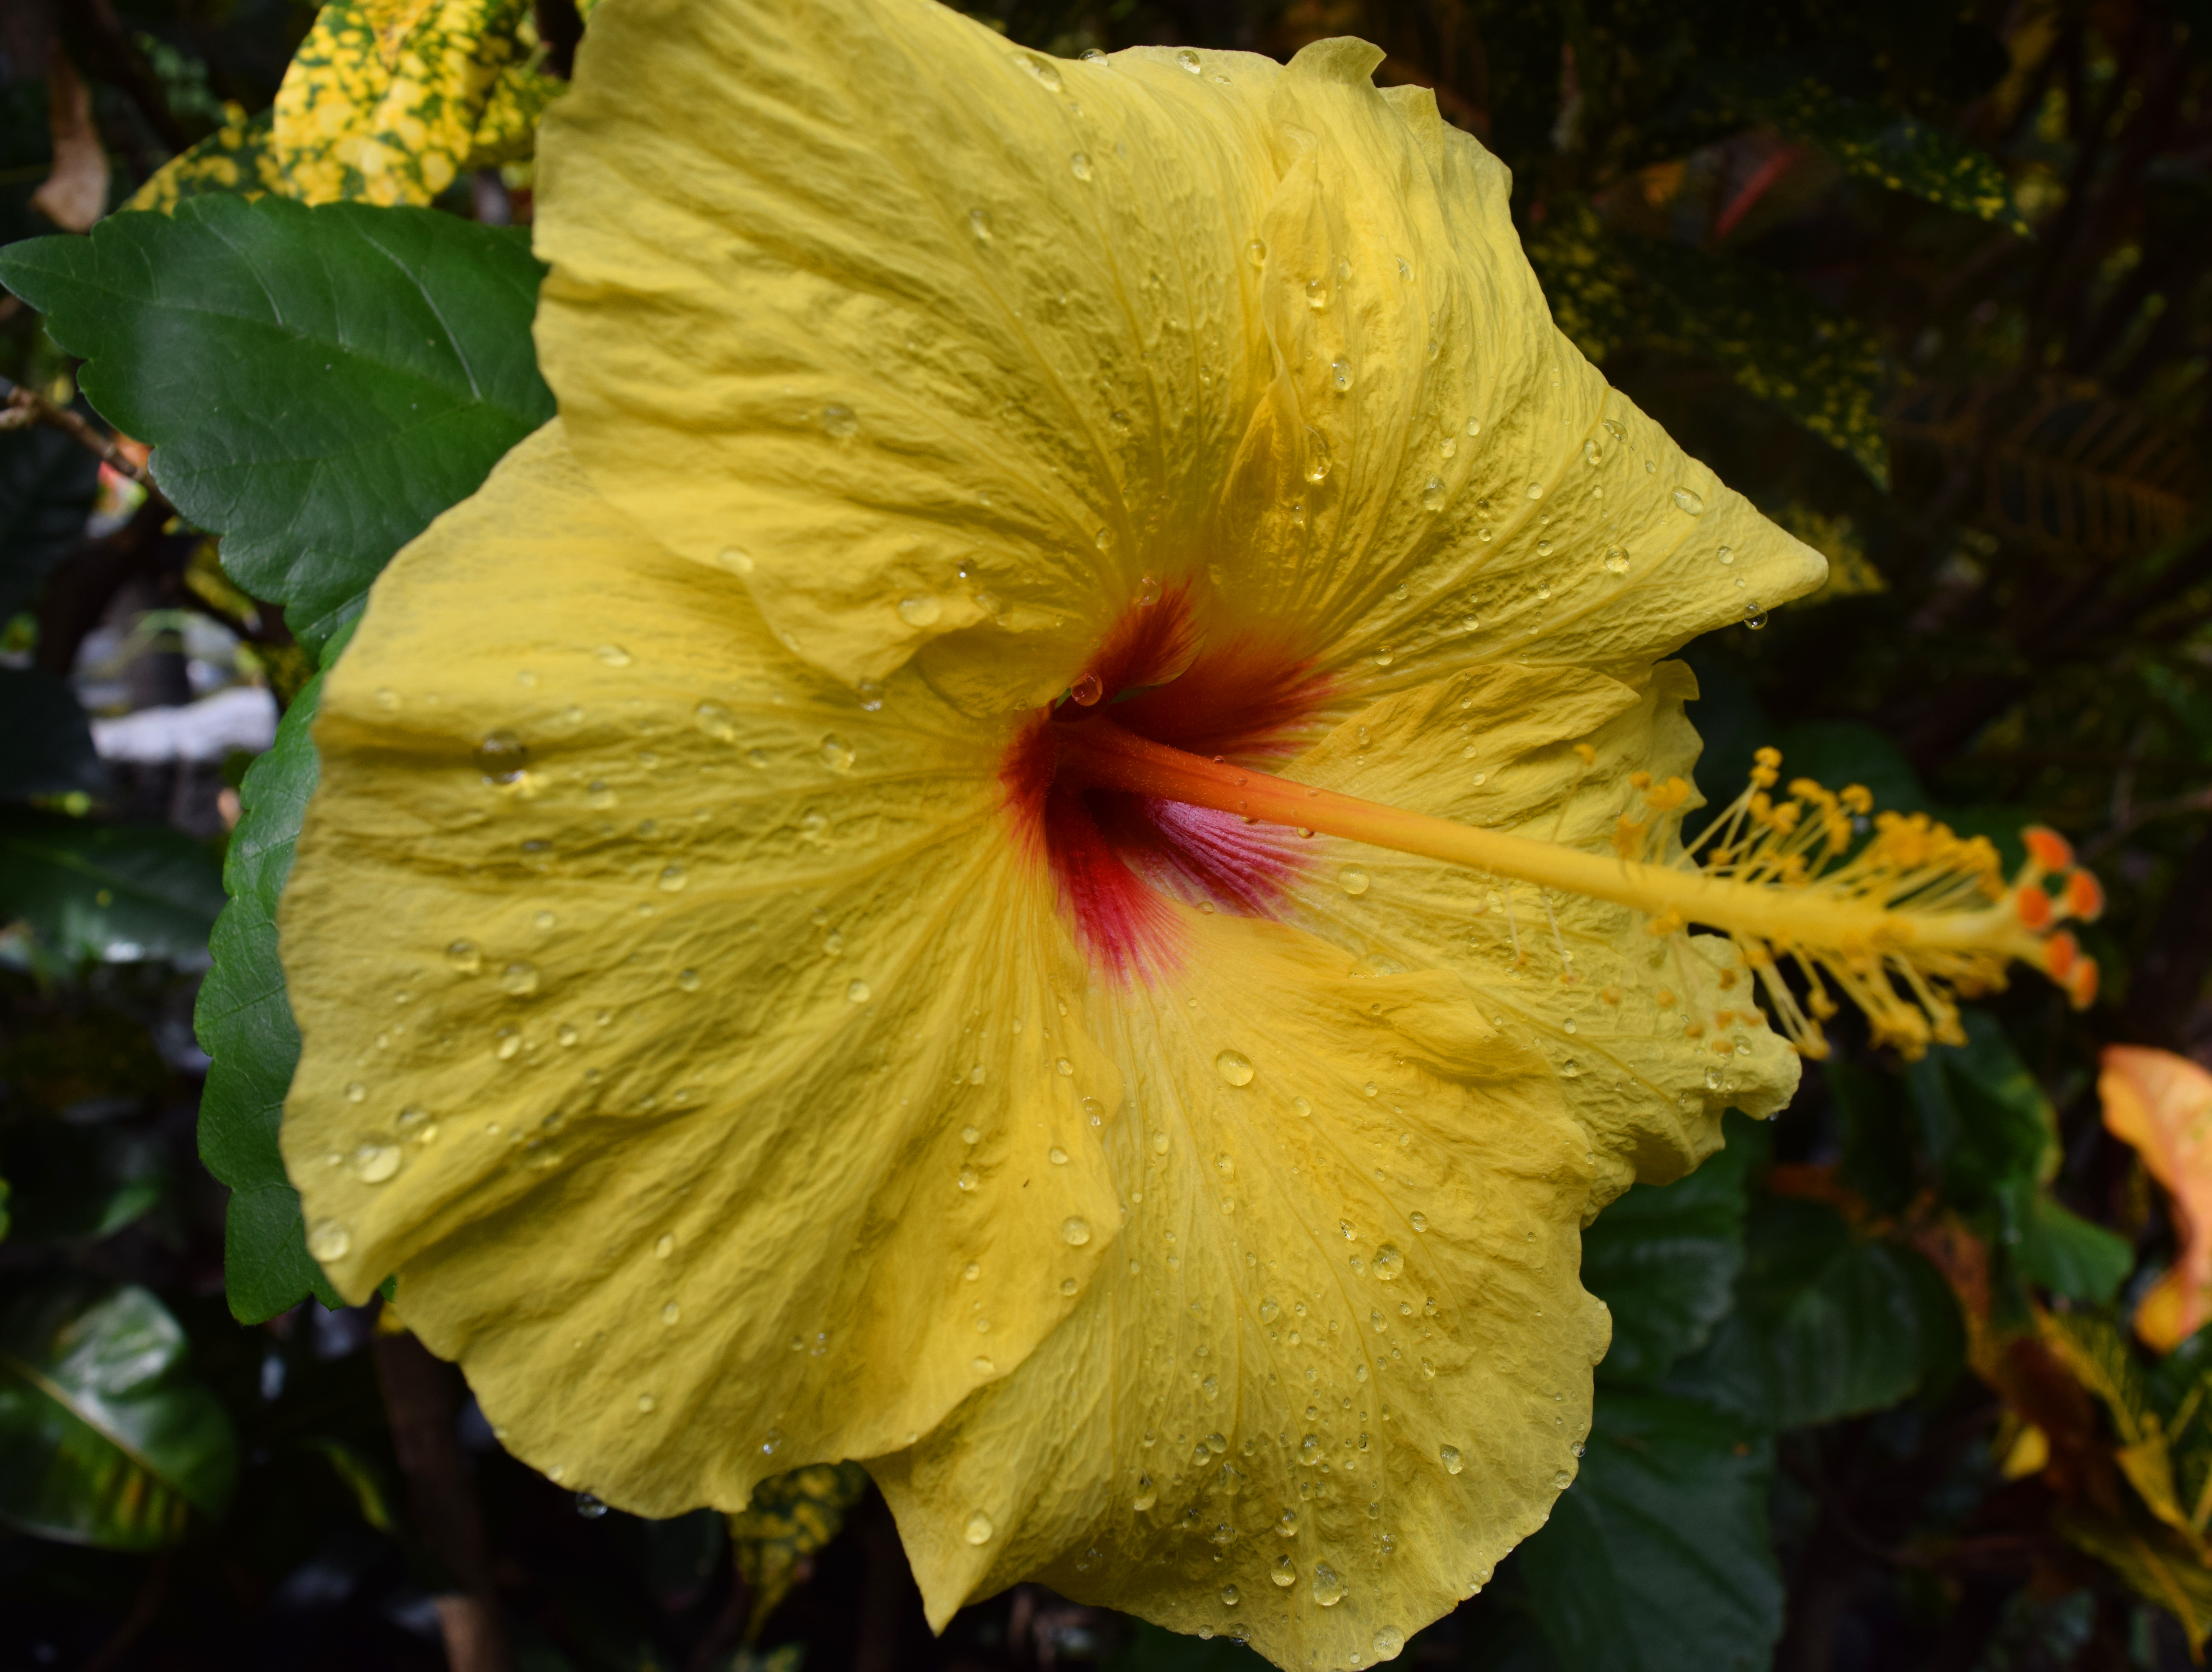 Wet Hibiscus by discoinferno84